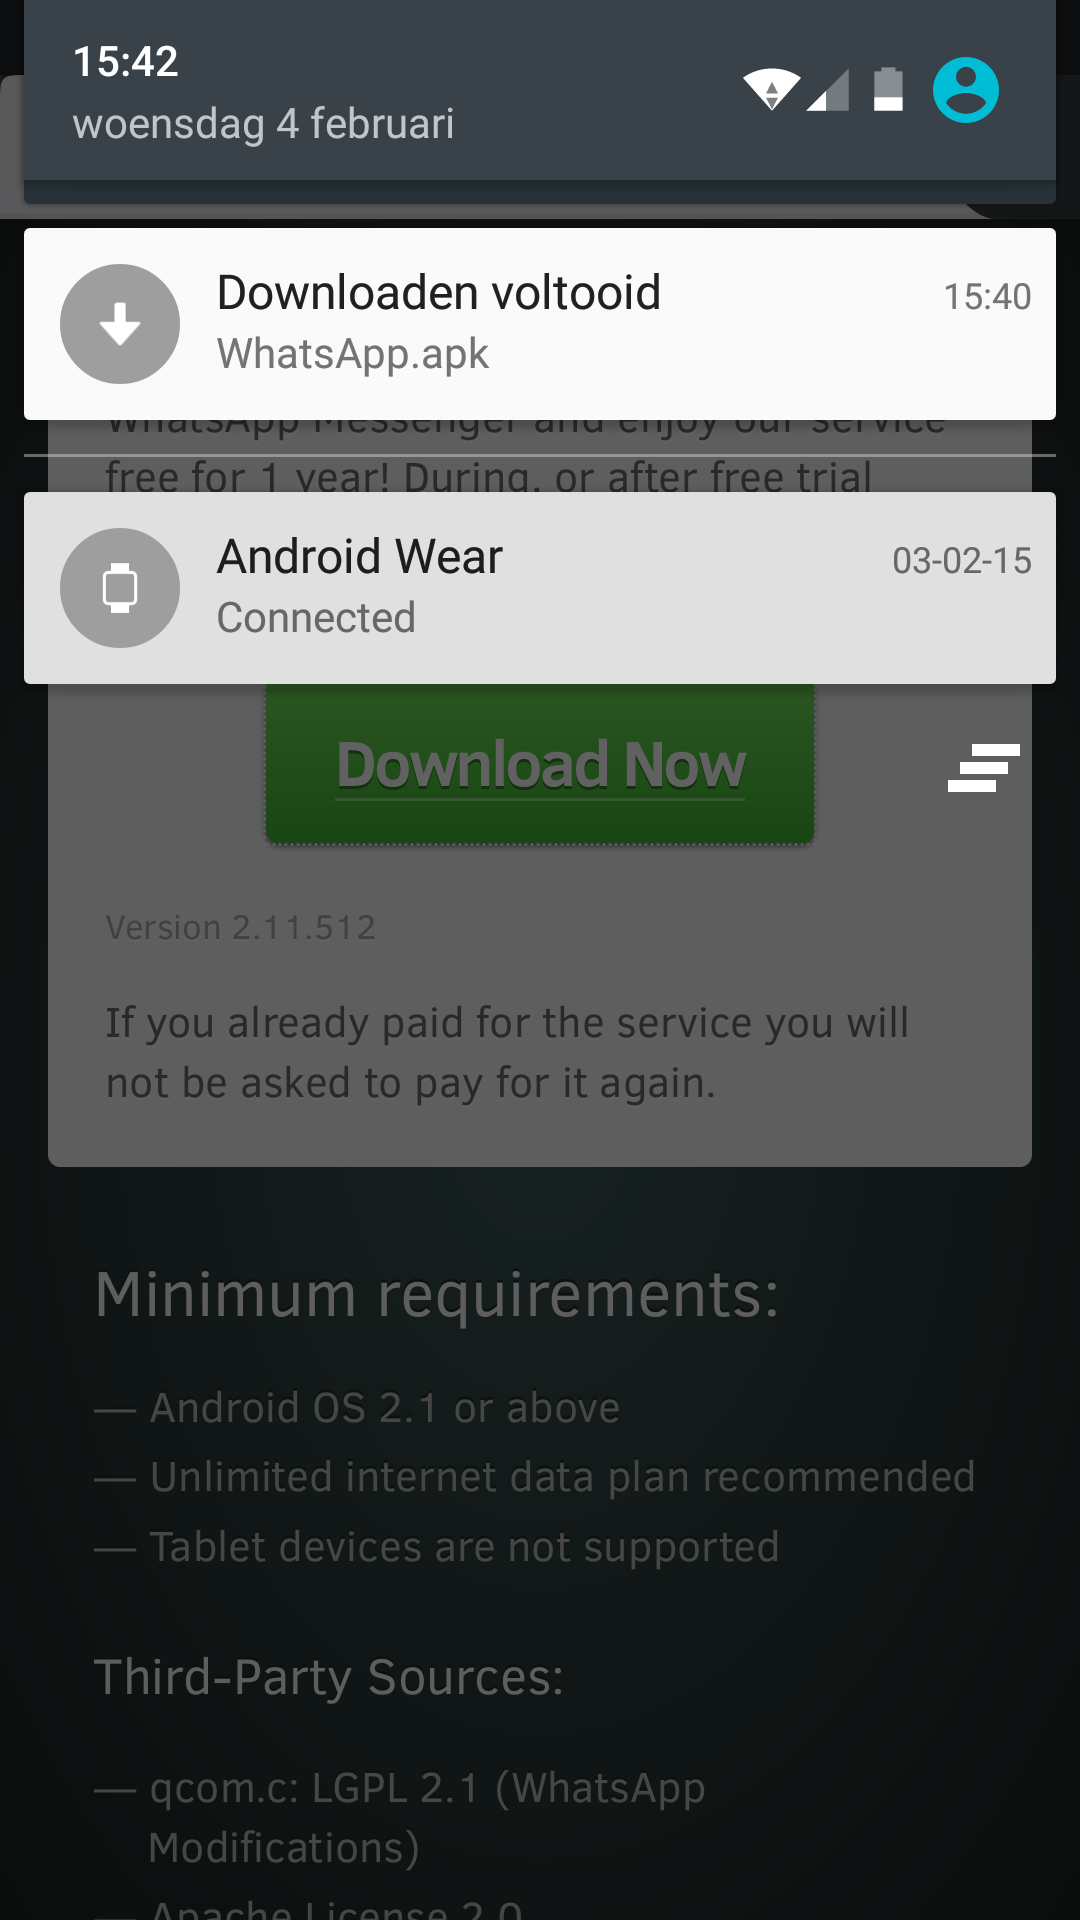 Whatsapp android 5.1 apk download